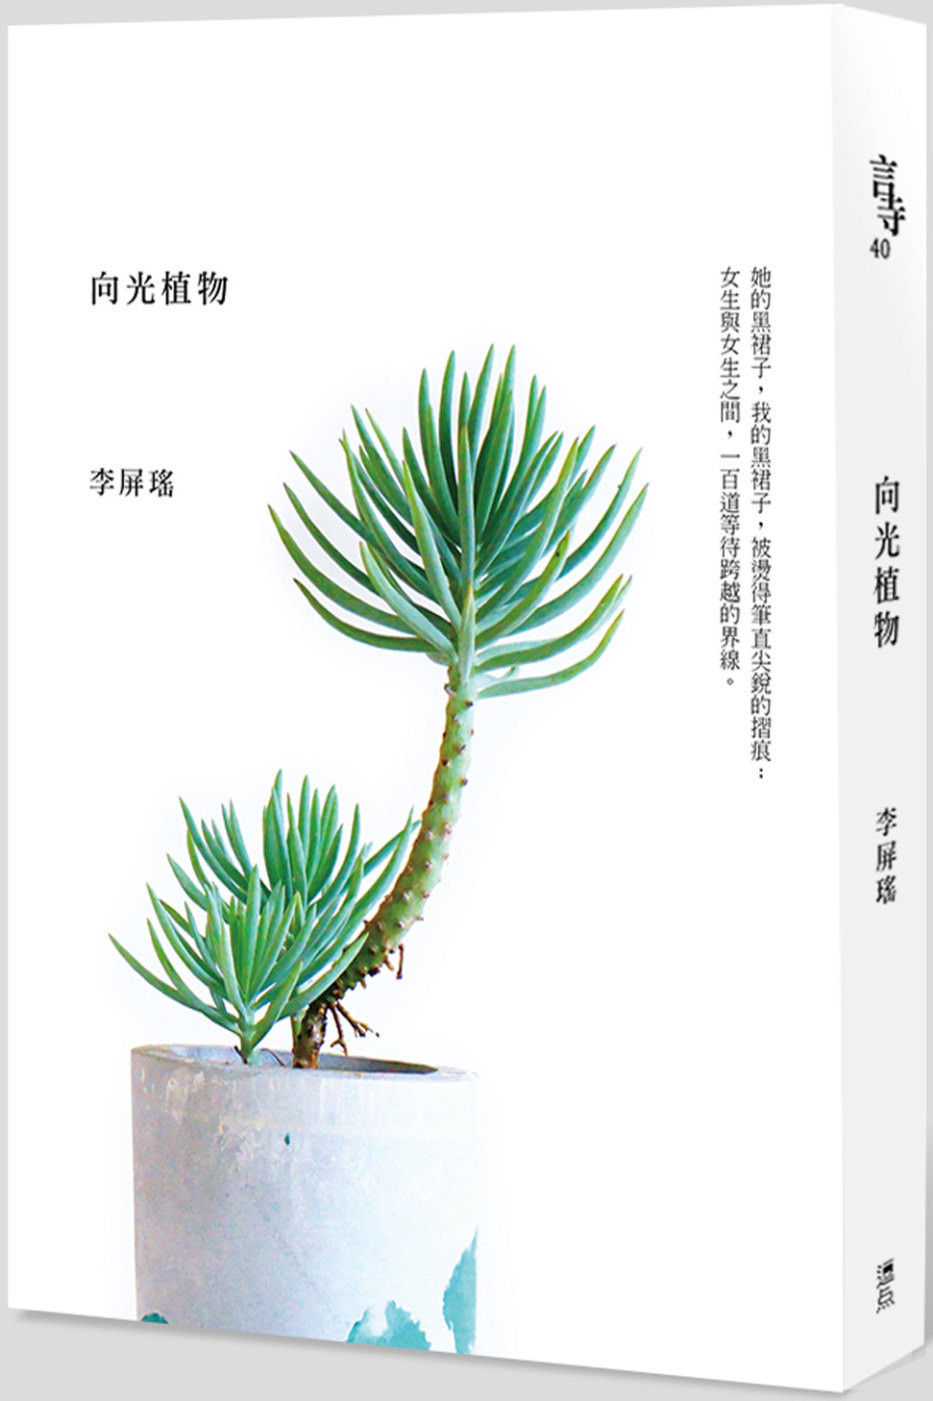 向光植物 Phototropism: A Novel